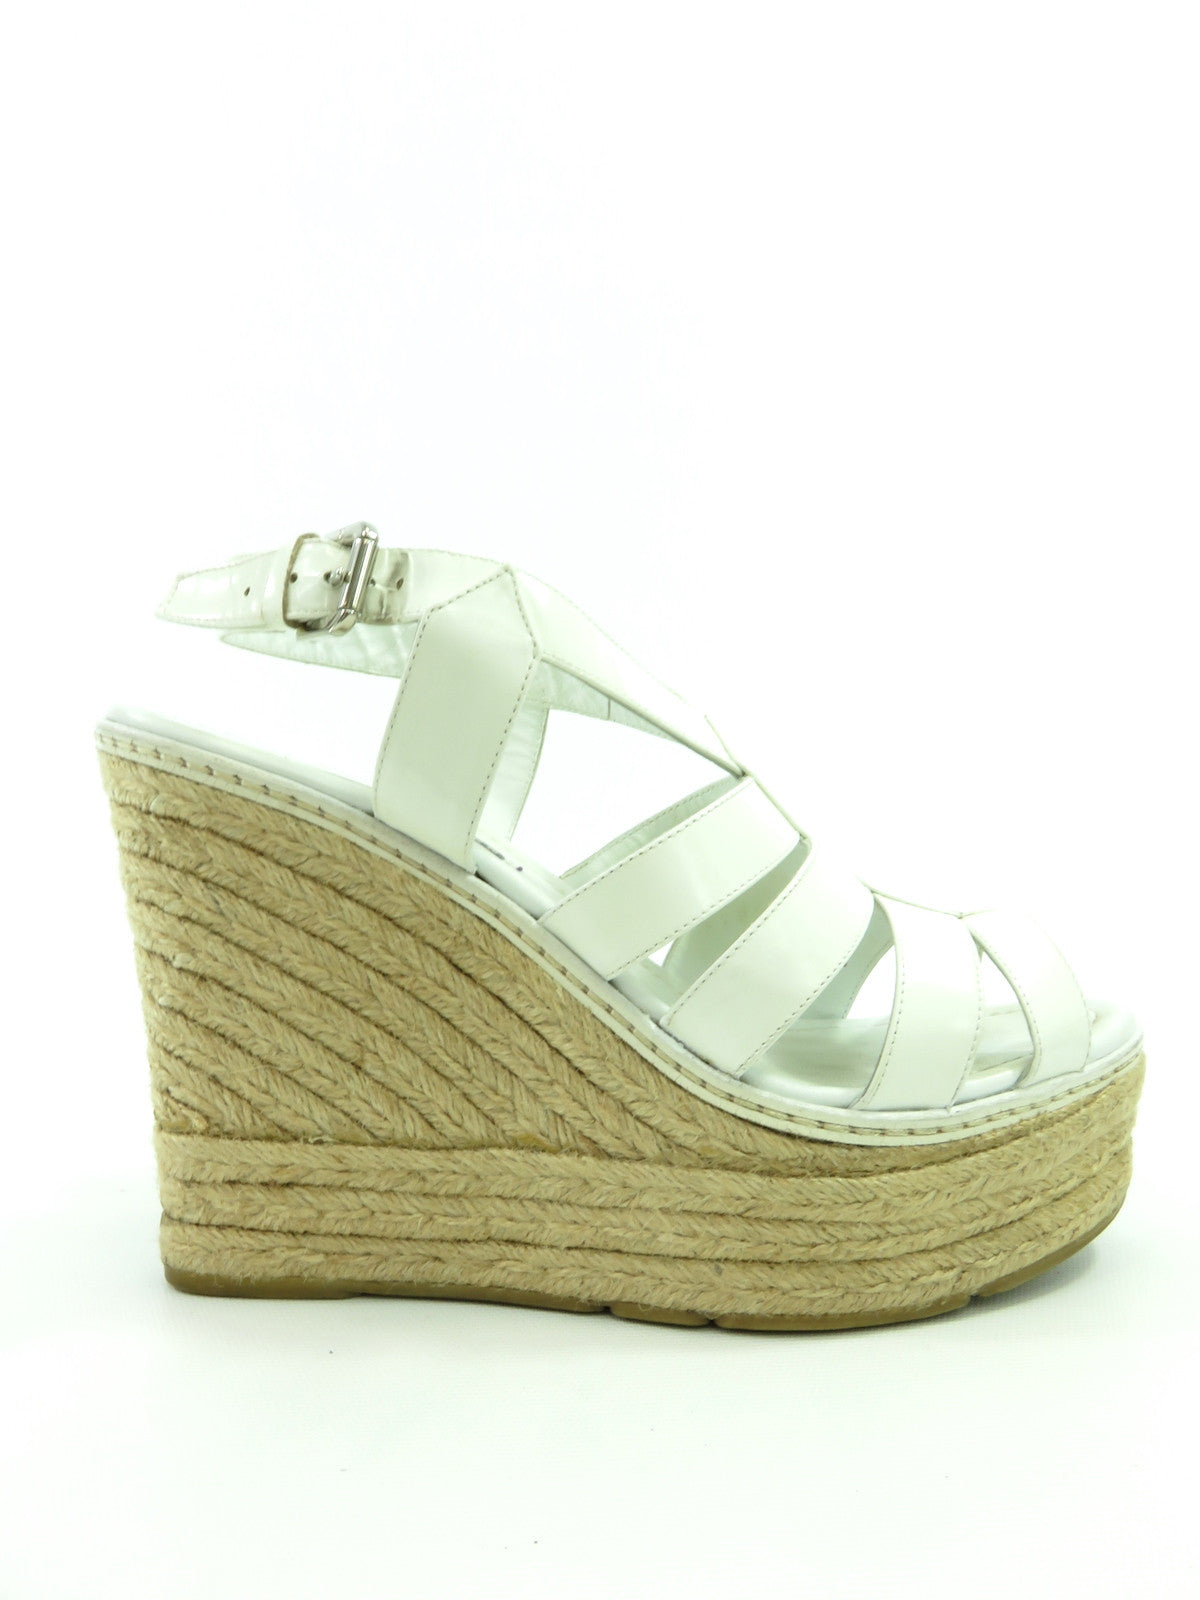 8d44c387081 RALPH LAUREN Women White Leather Wedge Platform Espadrilles Sandals Shoes  Size 9.5. Ralph Lauren Lorena s Worth